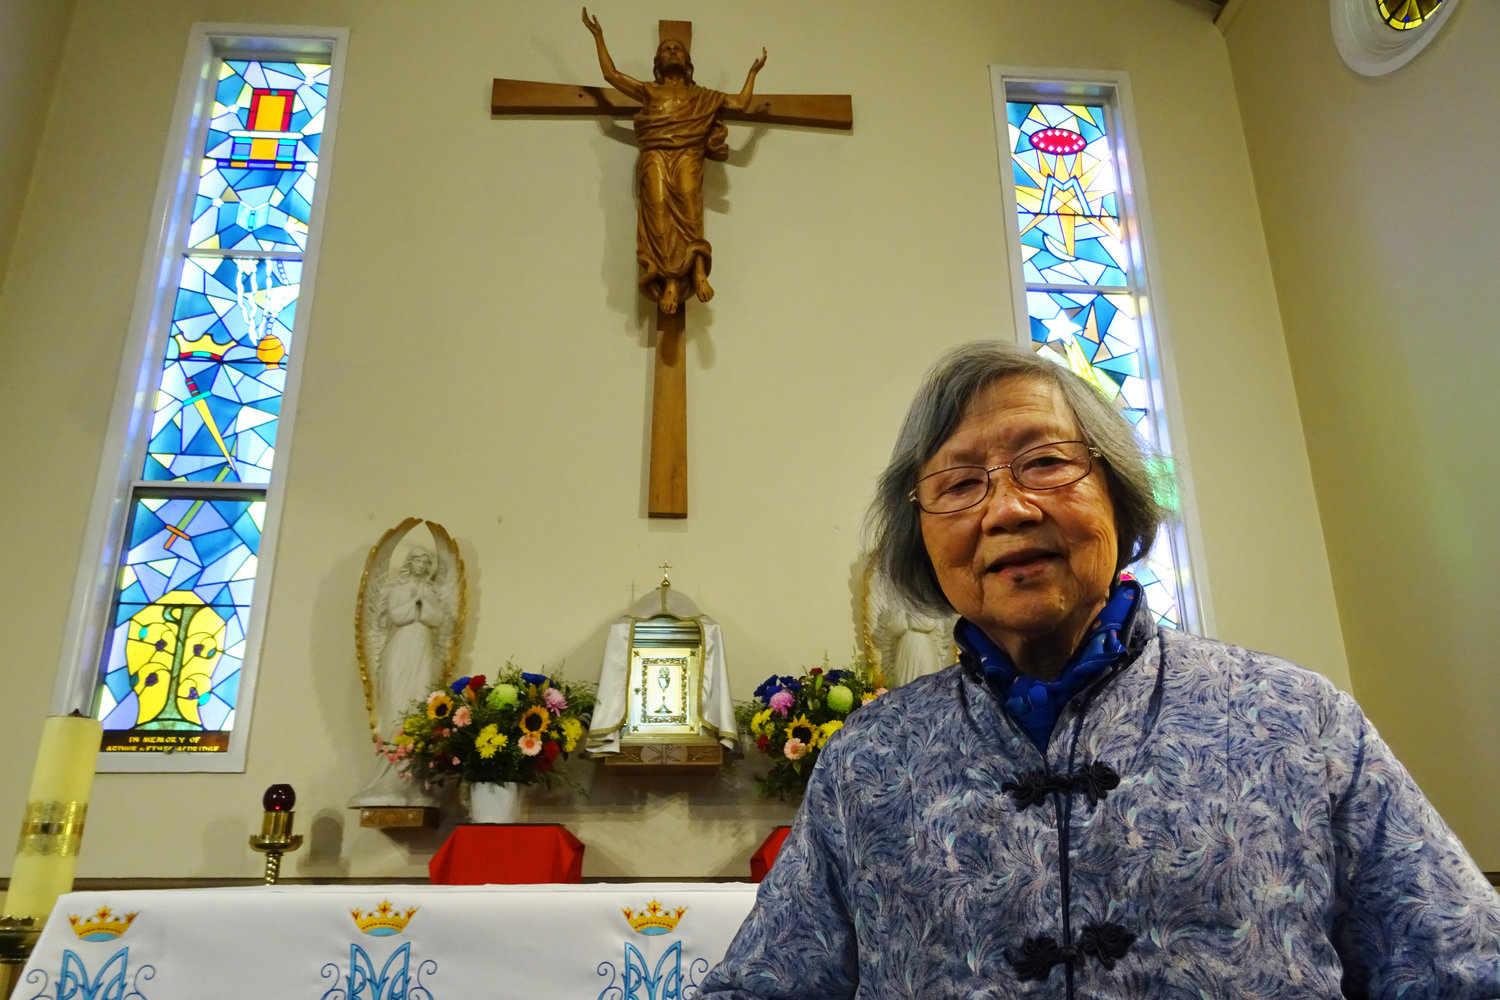 Teresa Liu poses June 15, 2019, at St. Michael Church in Hurstville in southern Sydney, Australia. Liu was imprisoned in China for 20 years because she was a member of Catholic lay organization, the Legion of Mary. She has helped convert hundreds of Chinese migrants to the Catholic faith in Australia.